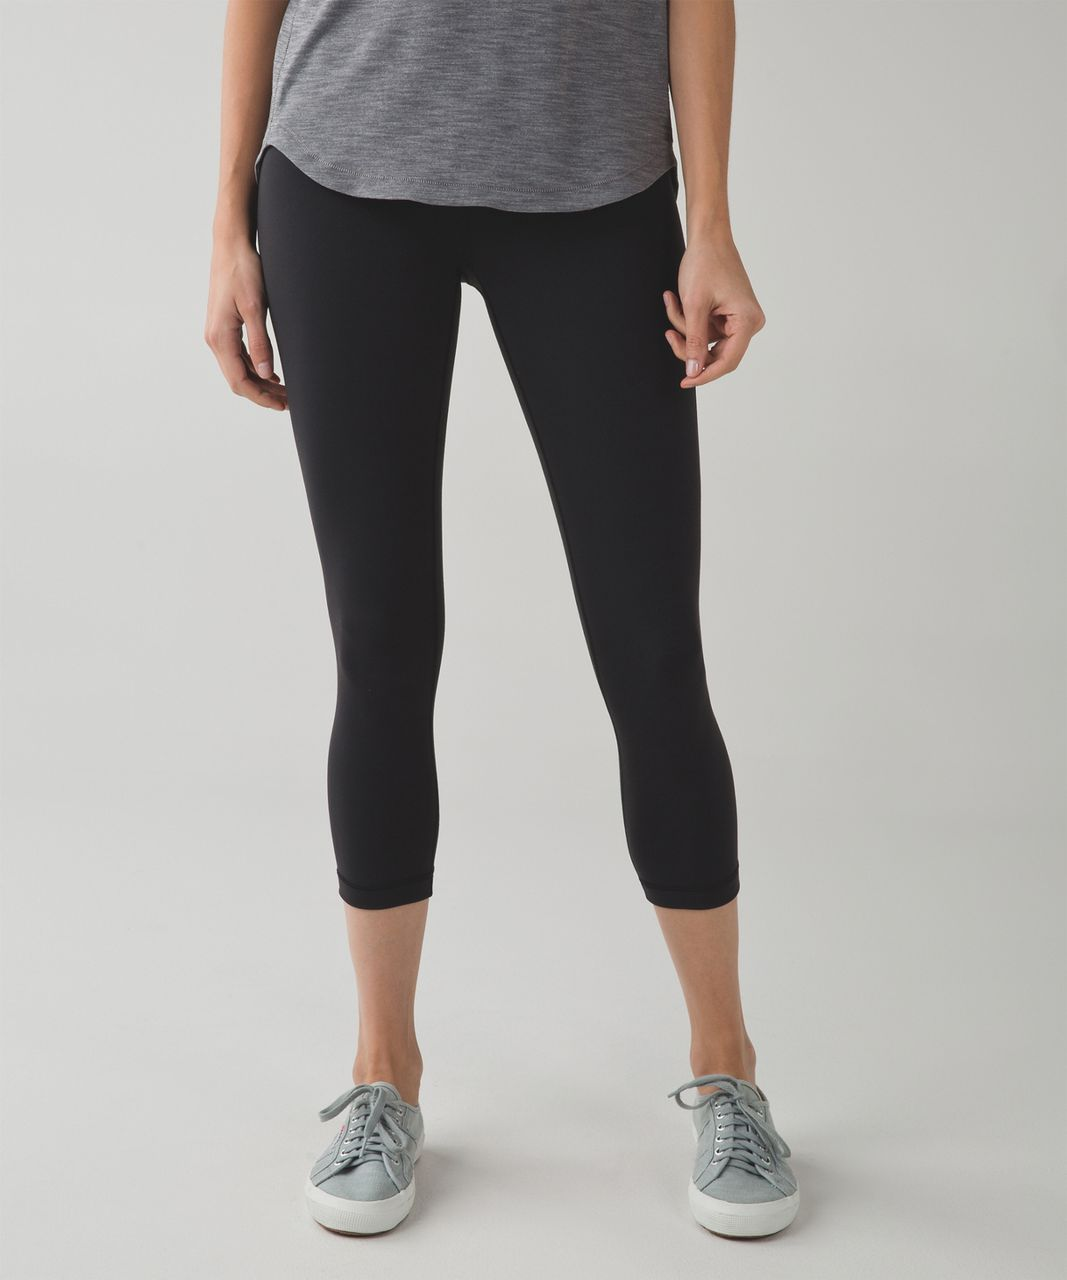 Lululemon Wunder Under Crop III (Second Release) - Black